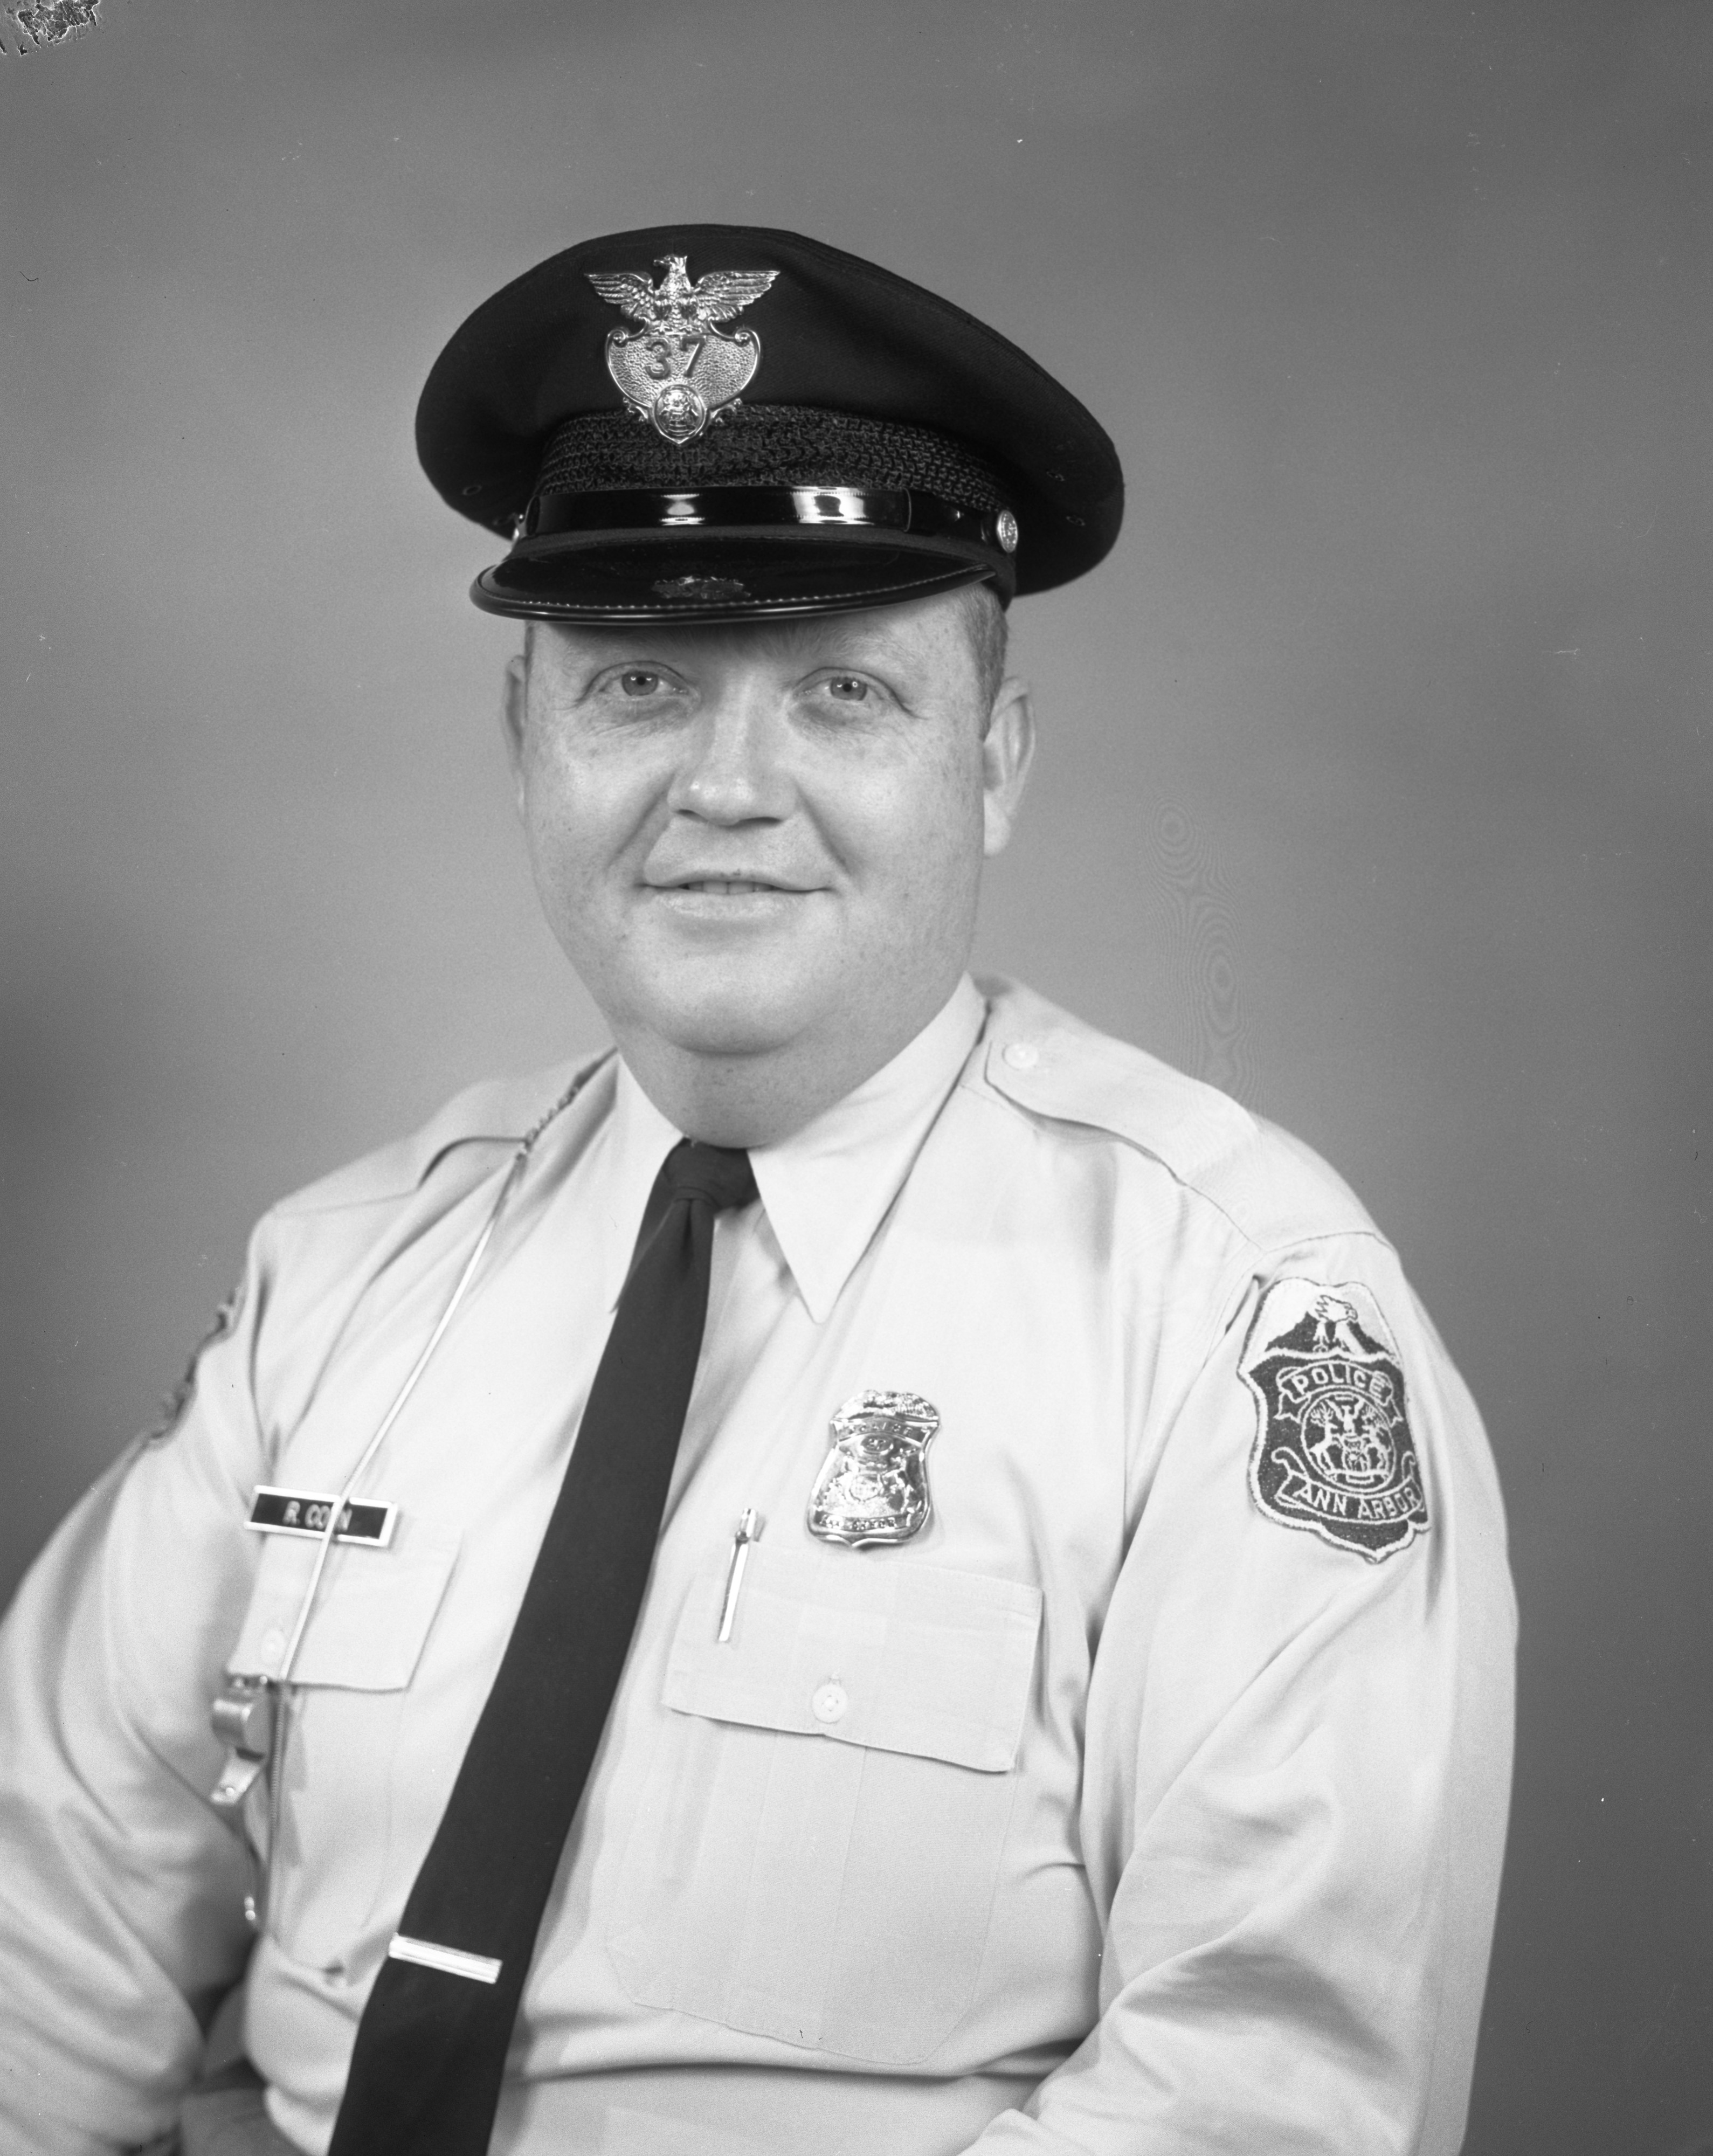 Ann Arbor Police Department Officer Robert Conn, July 1962 image